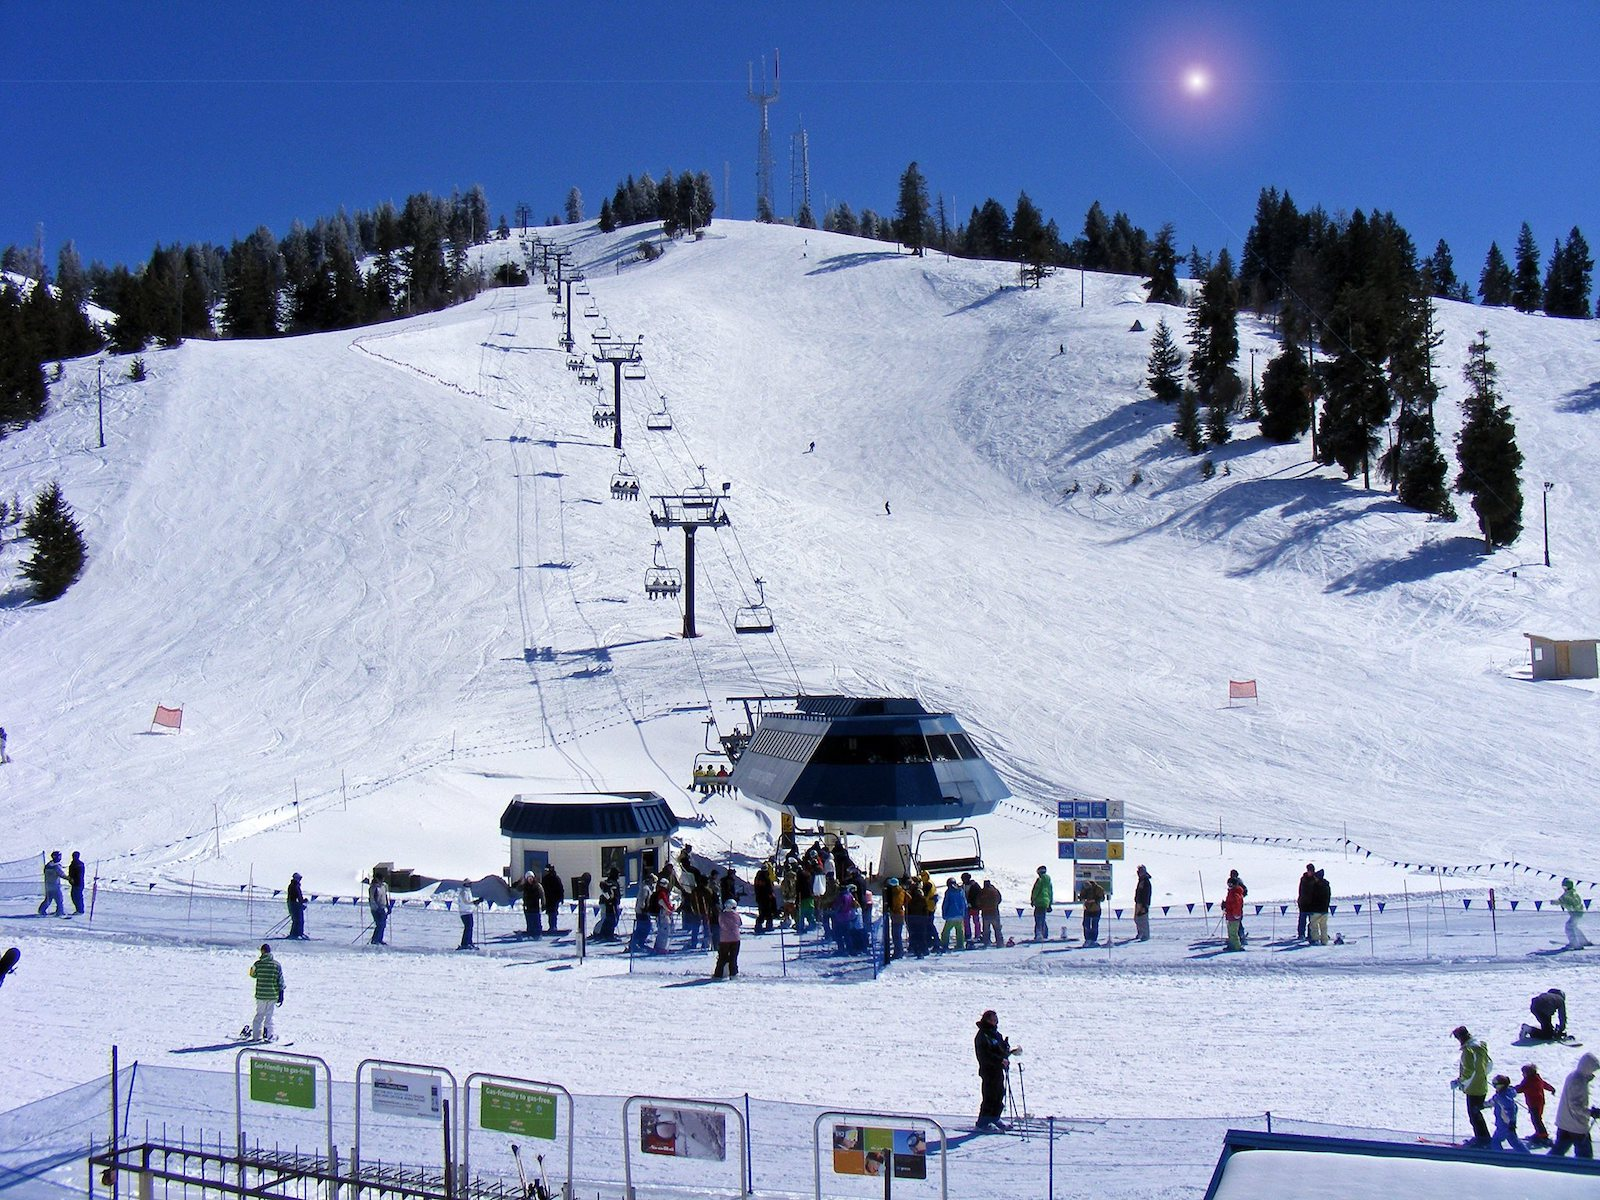 Image of the slopes at Bogus Basin Ski Resorts in Boise, Idaho